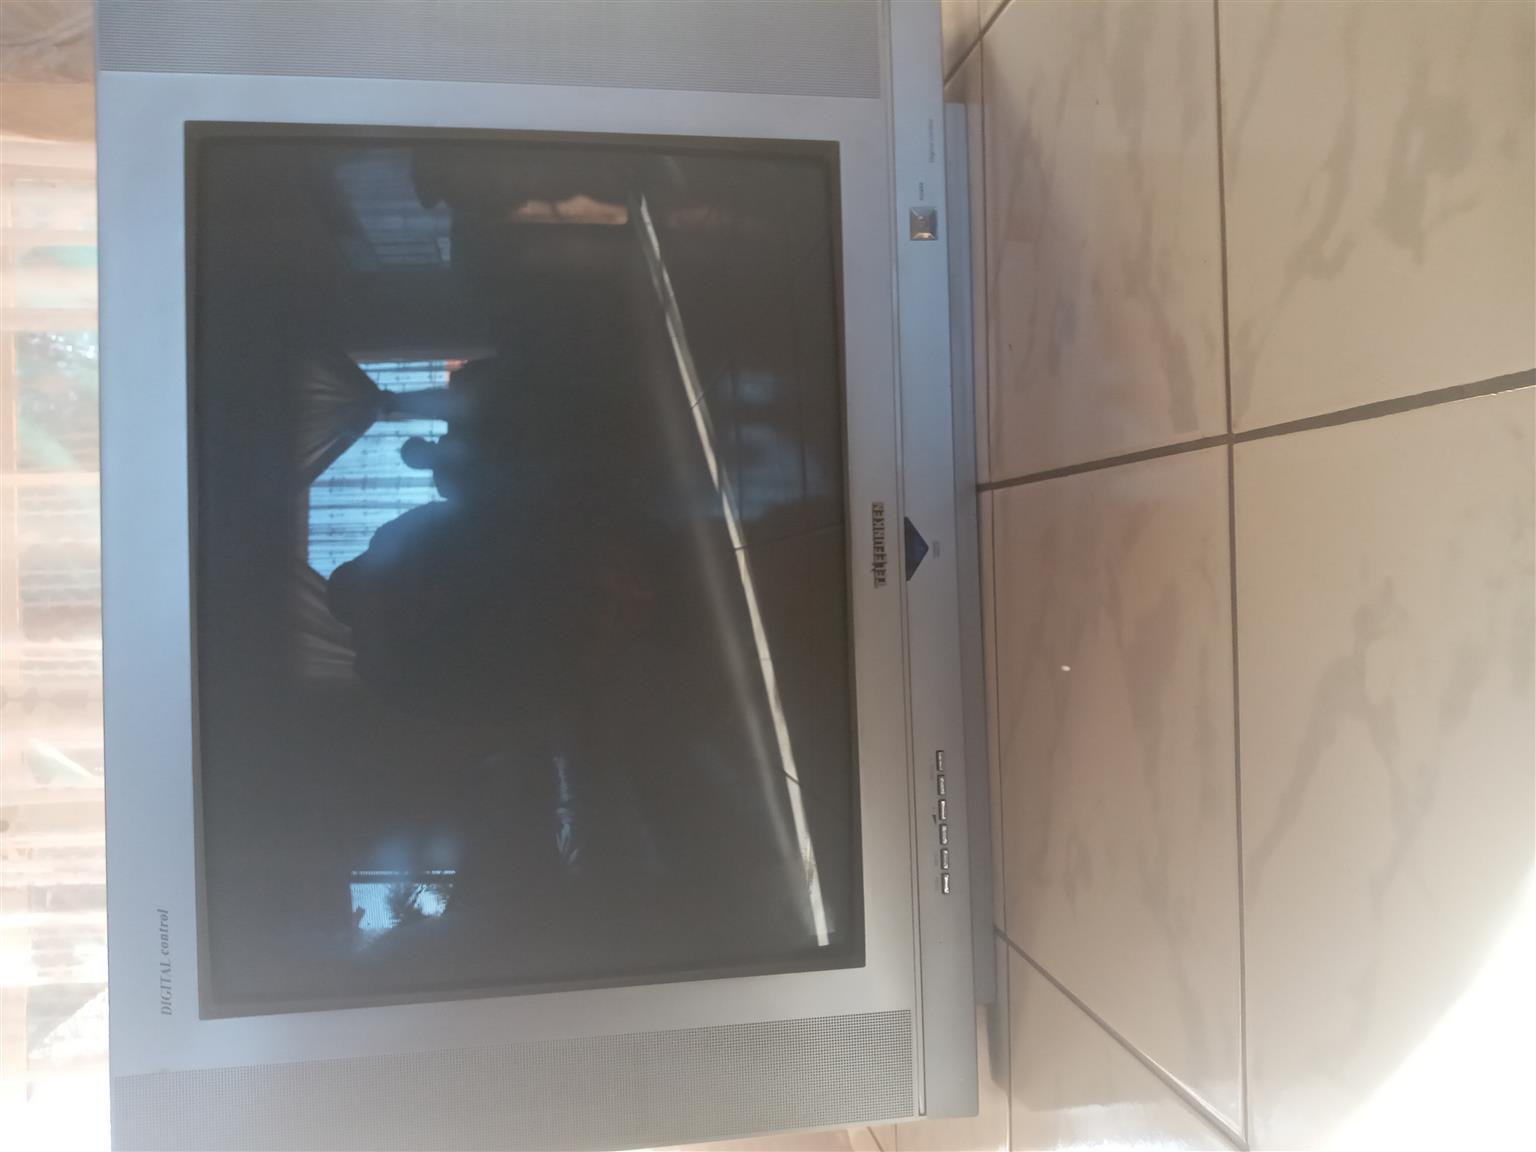 FOR SALE: TV FOR STRIPPING